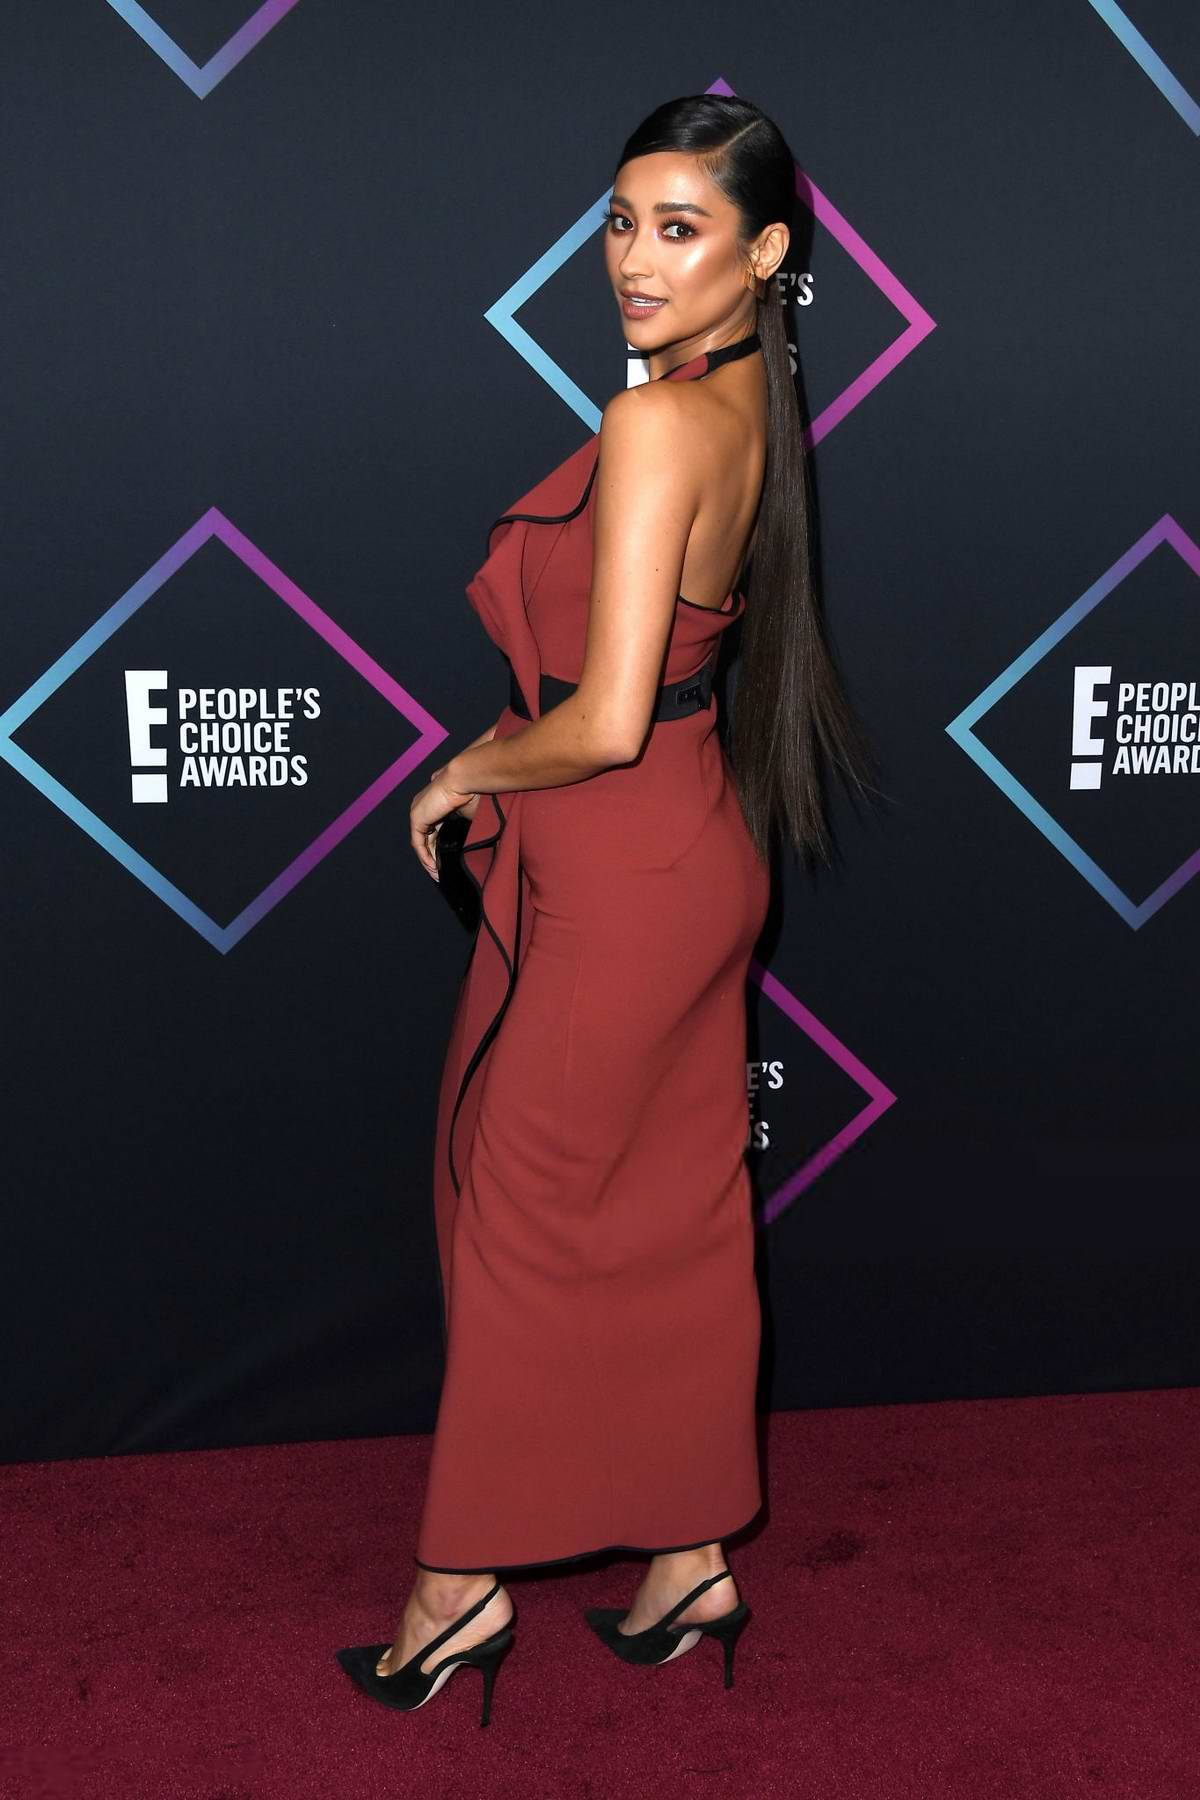 Shay Mitchell attends People's Choice Awards 2018 at Barker Hangar in Santa Monica, California